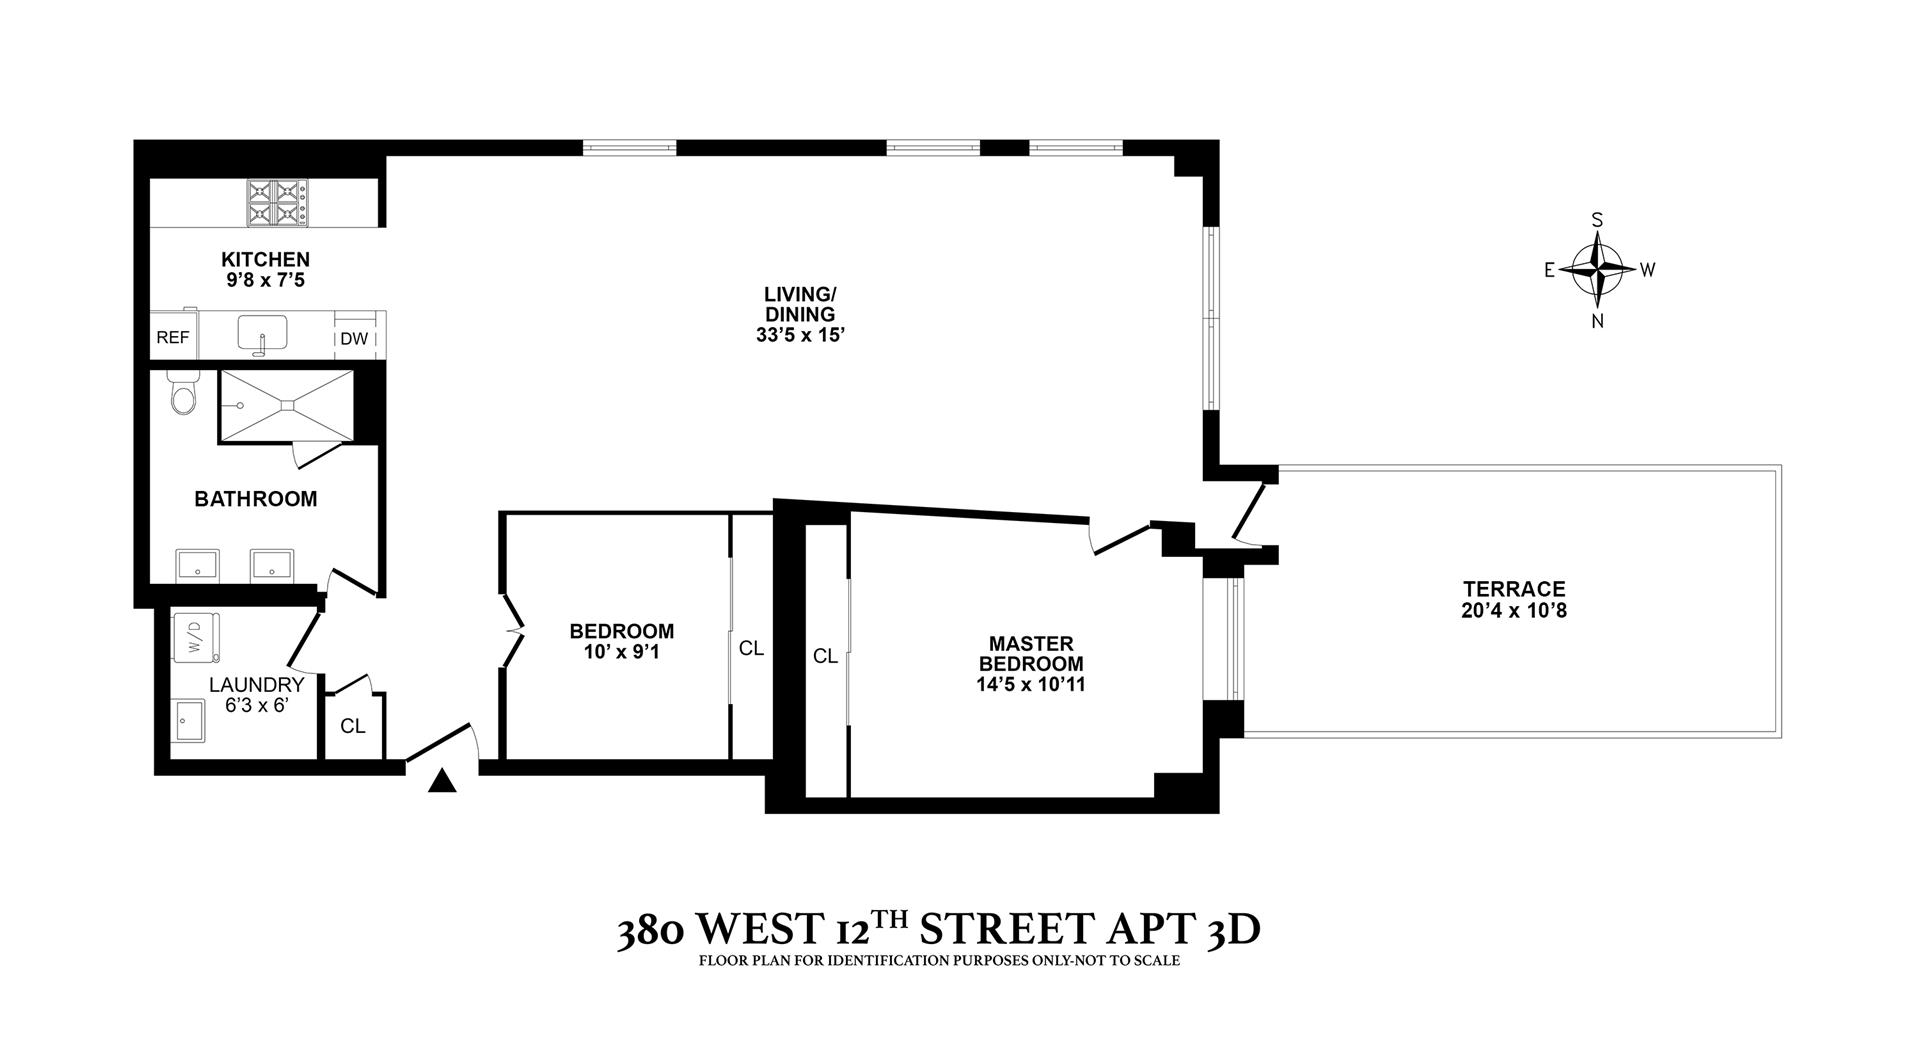 Floor plan of 380 West 12th St, 3D - West Village - Meatpacking District, New York